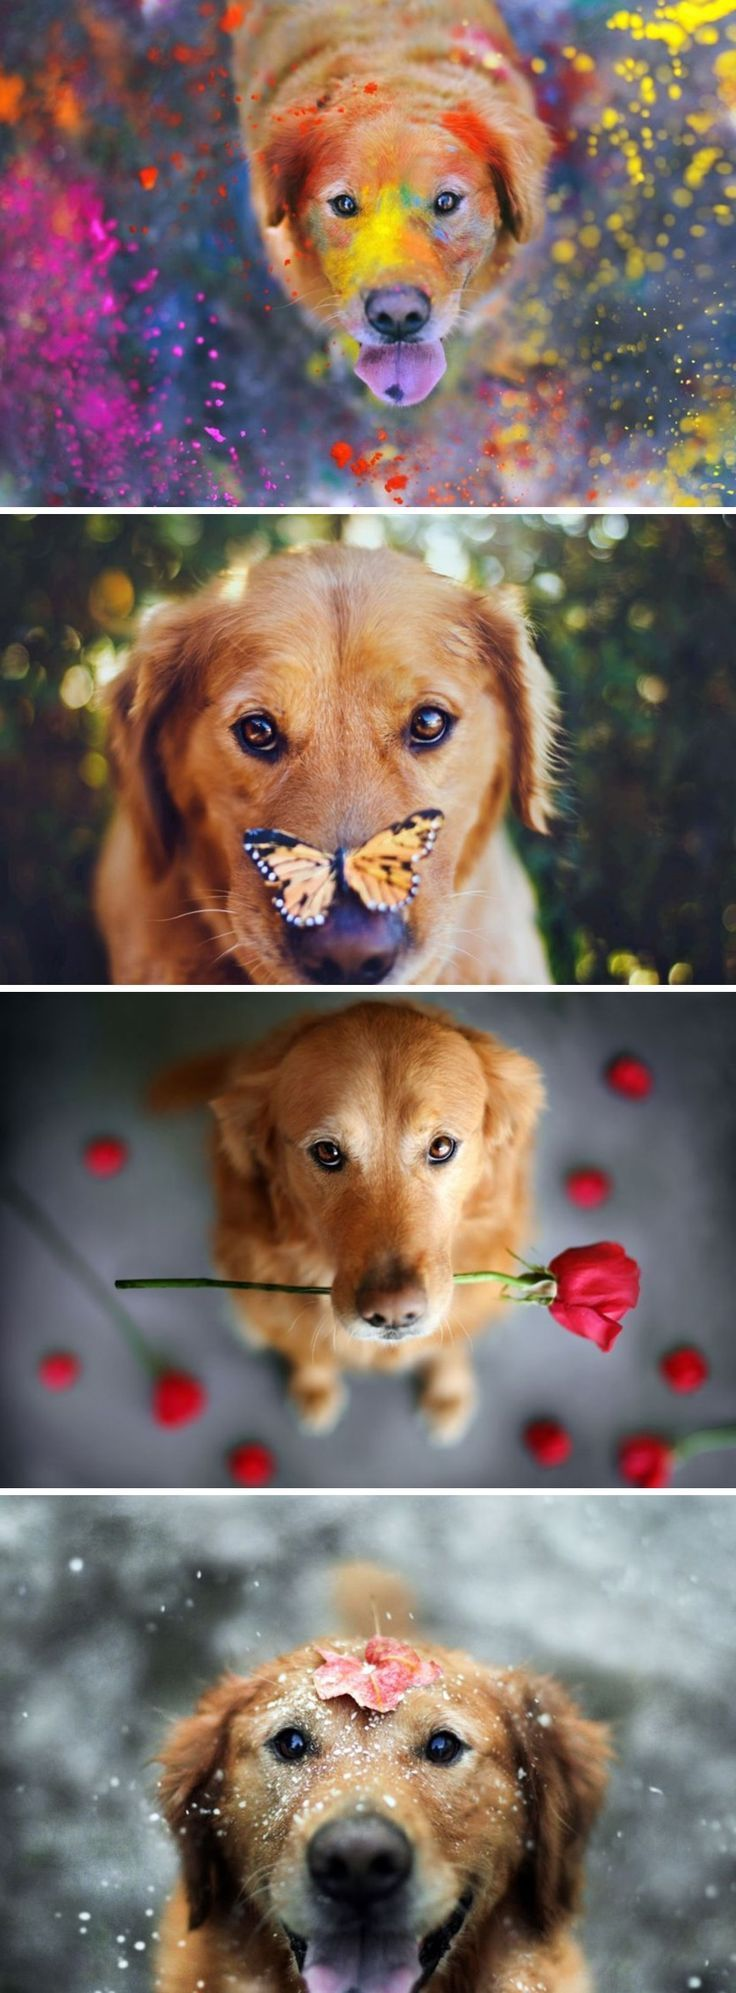 Make one special photo charms for your pets compatible with